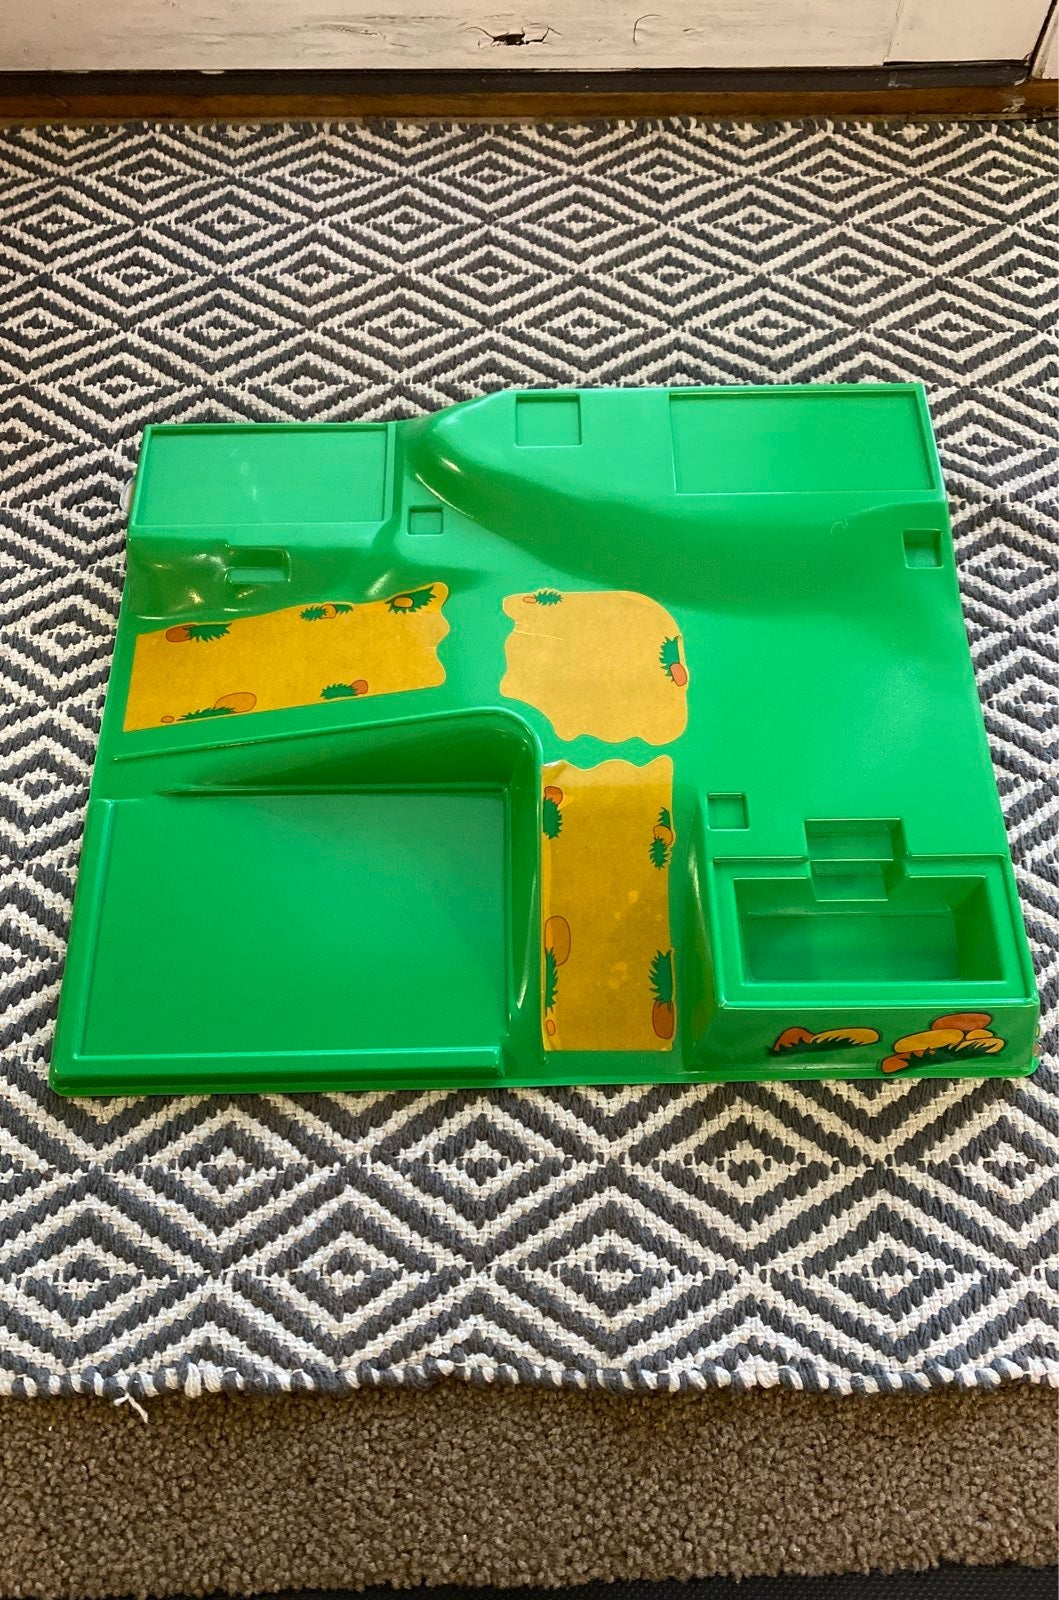 LEGO Baseplate from 1998